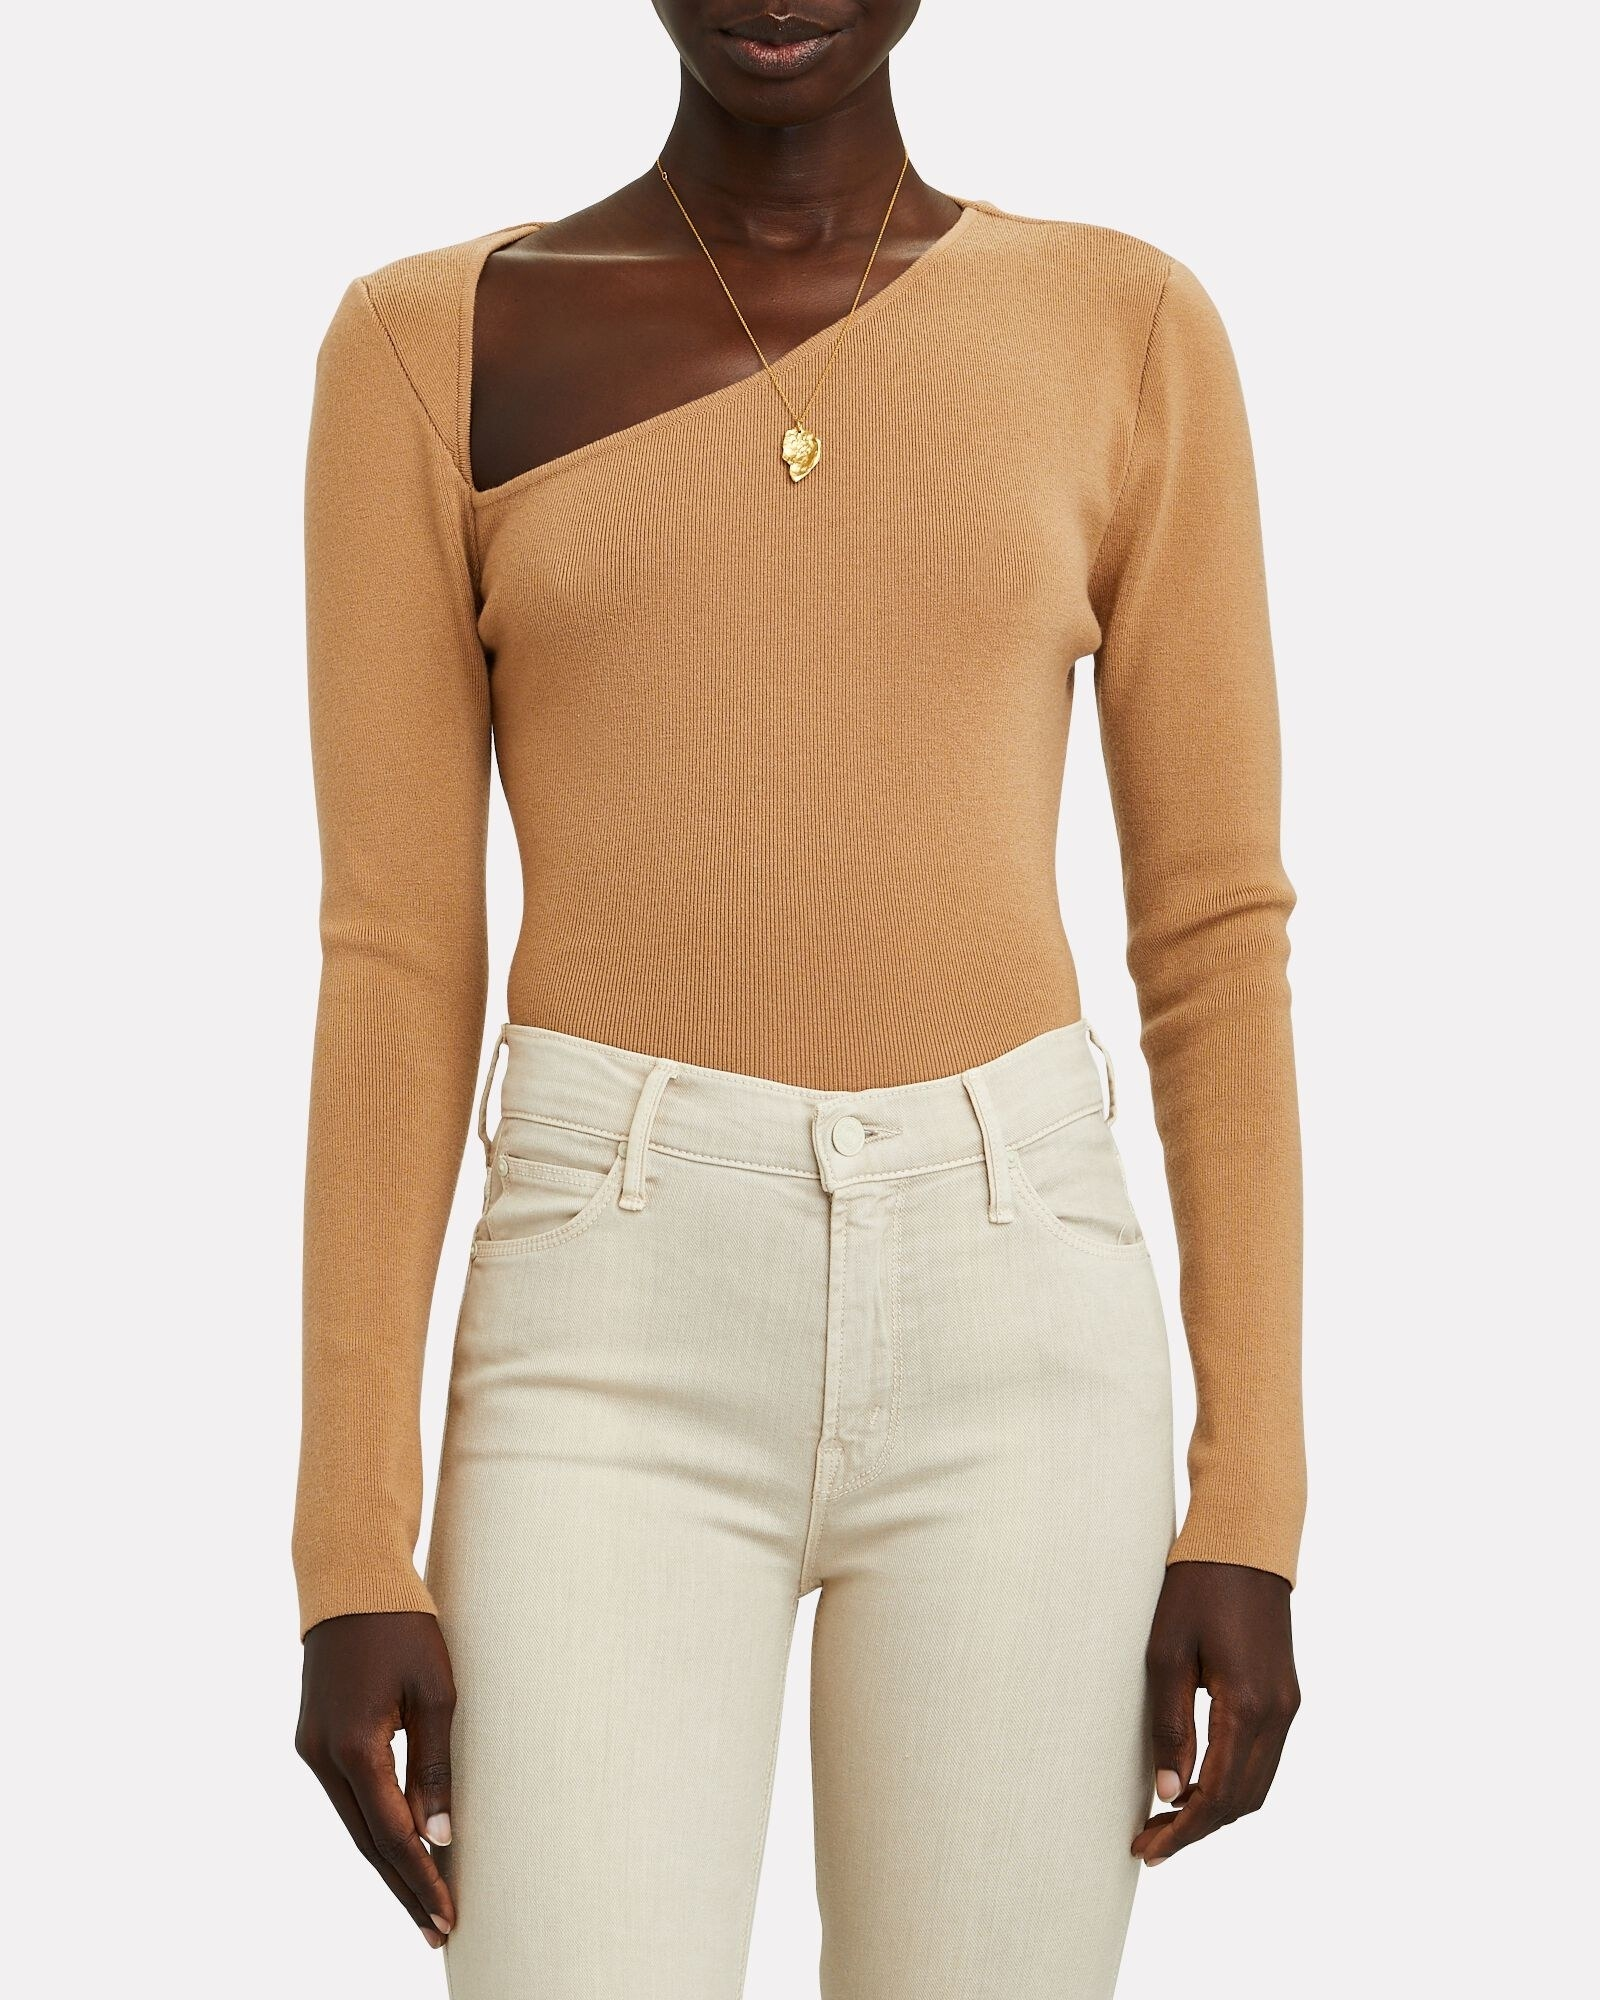 Model wearing the tan long-sleeve thin sweater with an asymmetric V-neckline